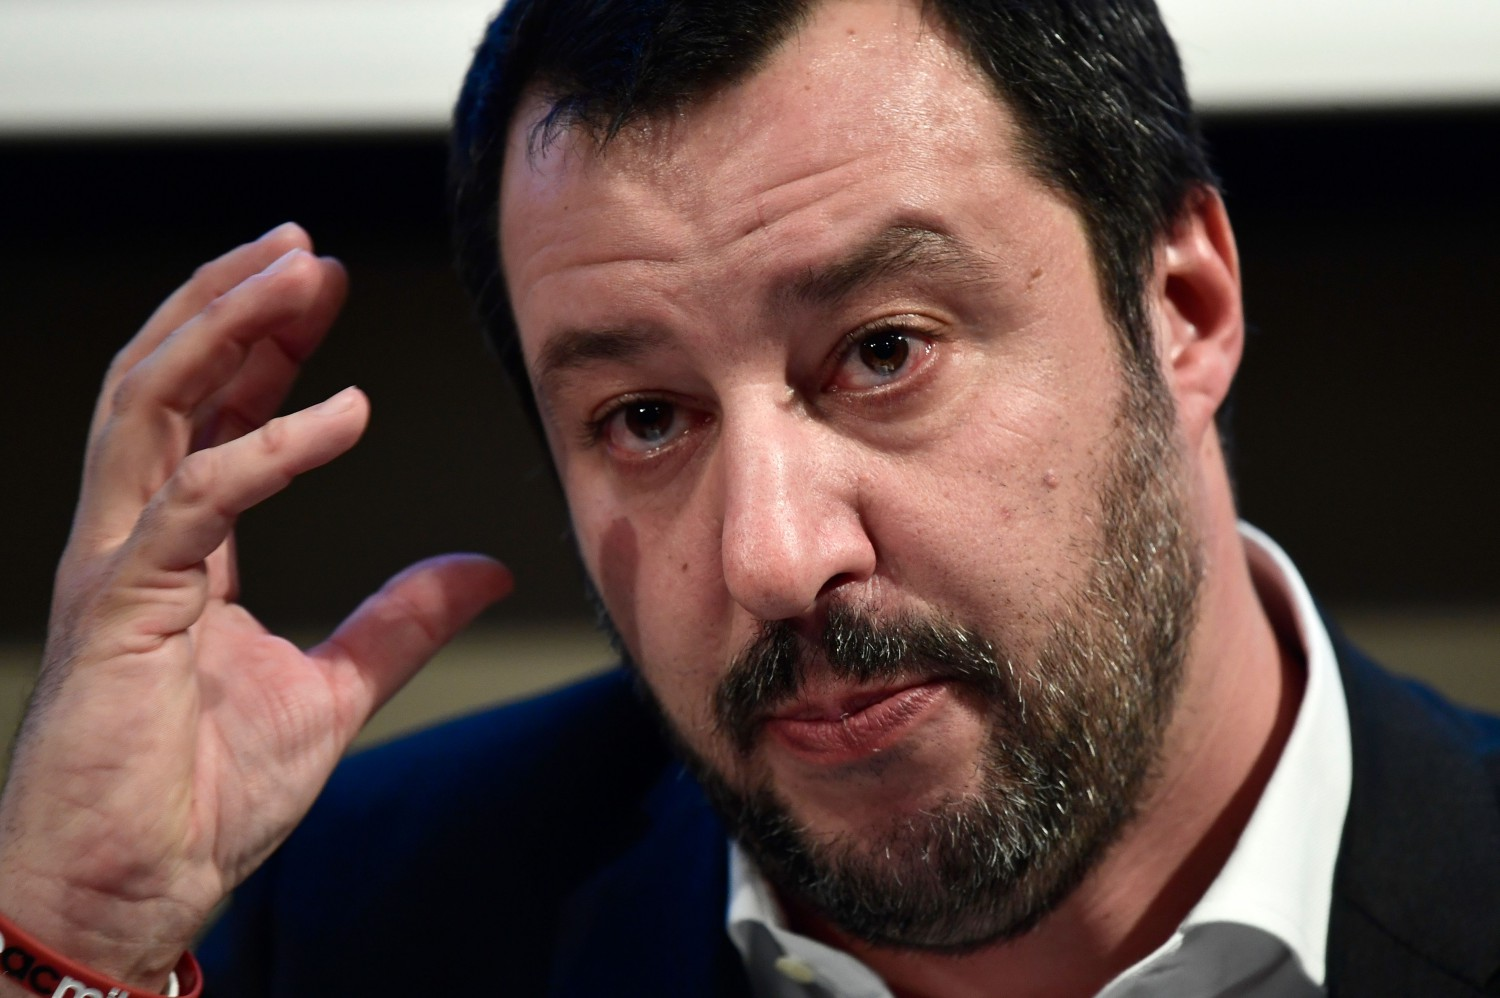 salvini - photo #40